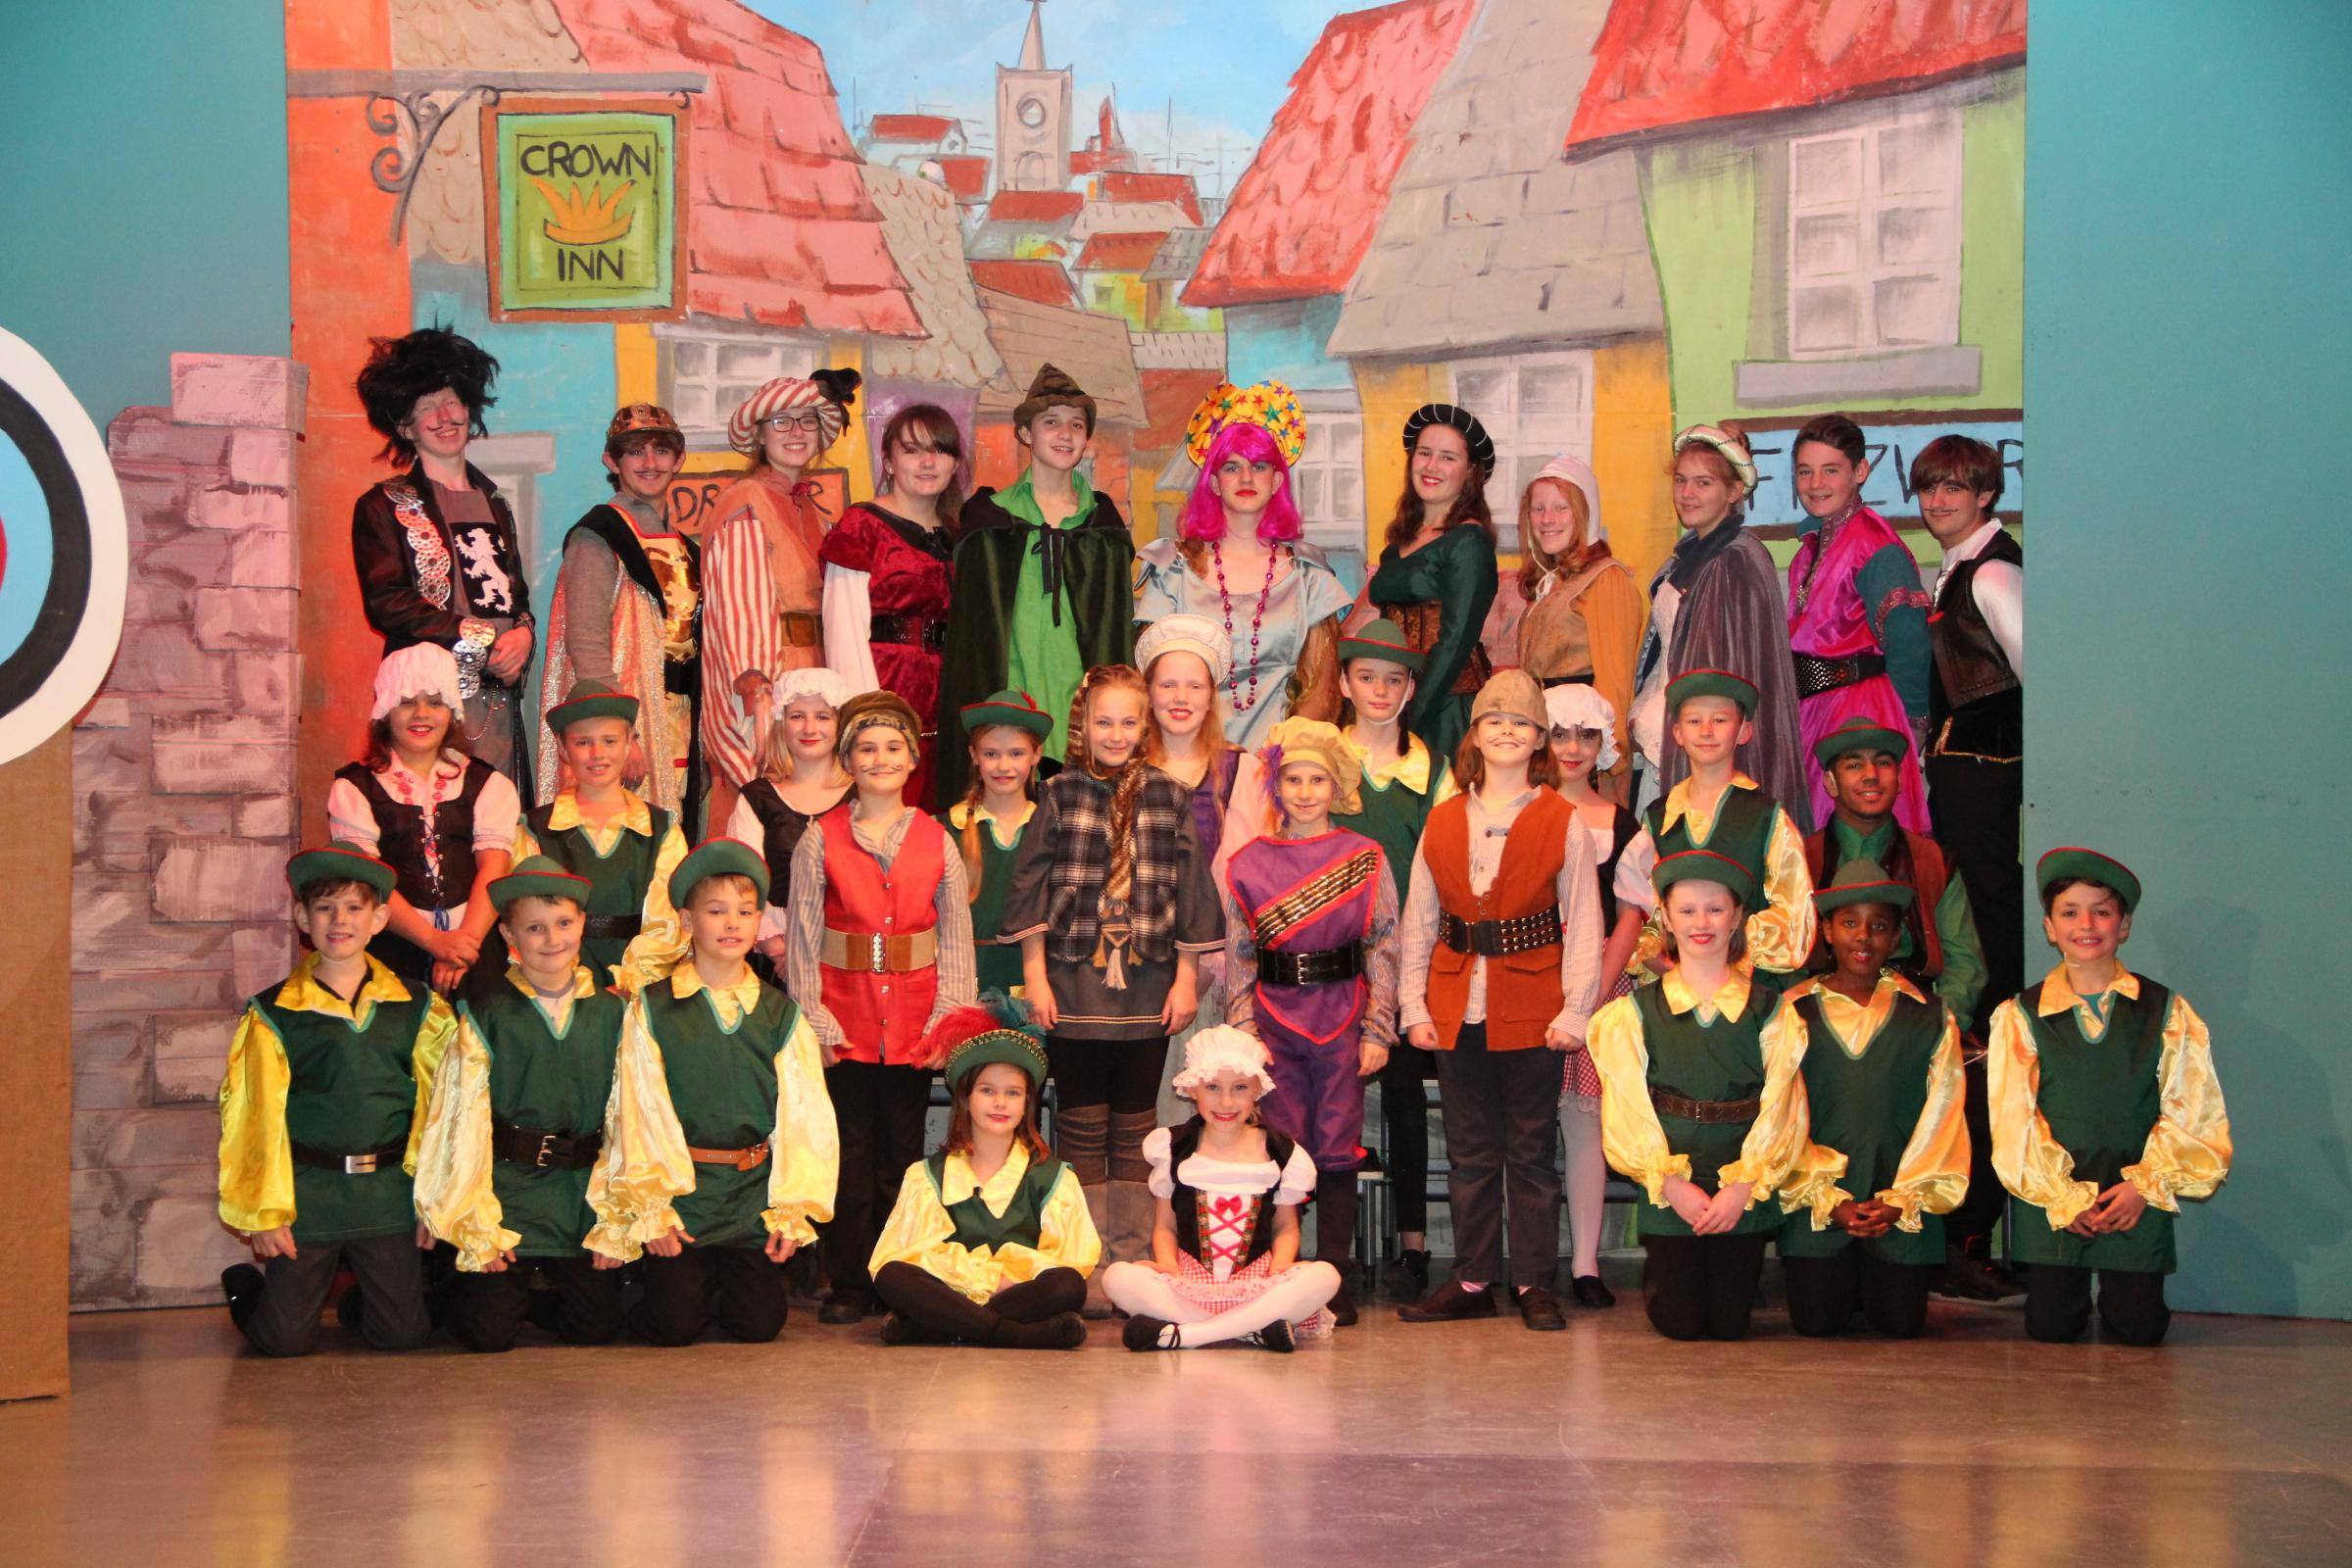 It's panto time in Grange-over-Sands